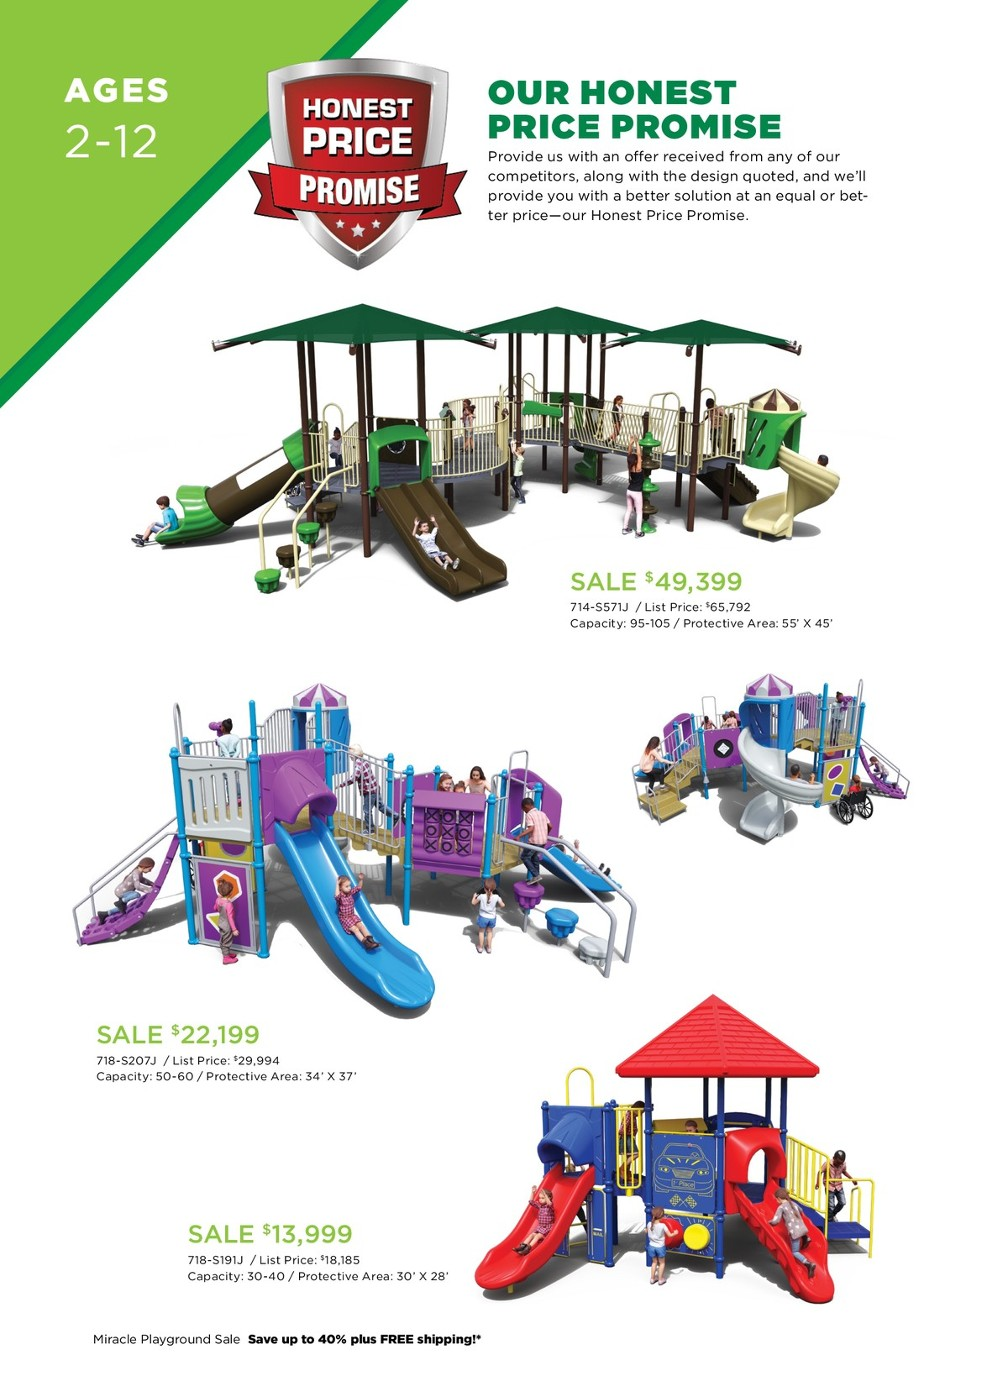 2019 Miracle 2H Playground Sale